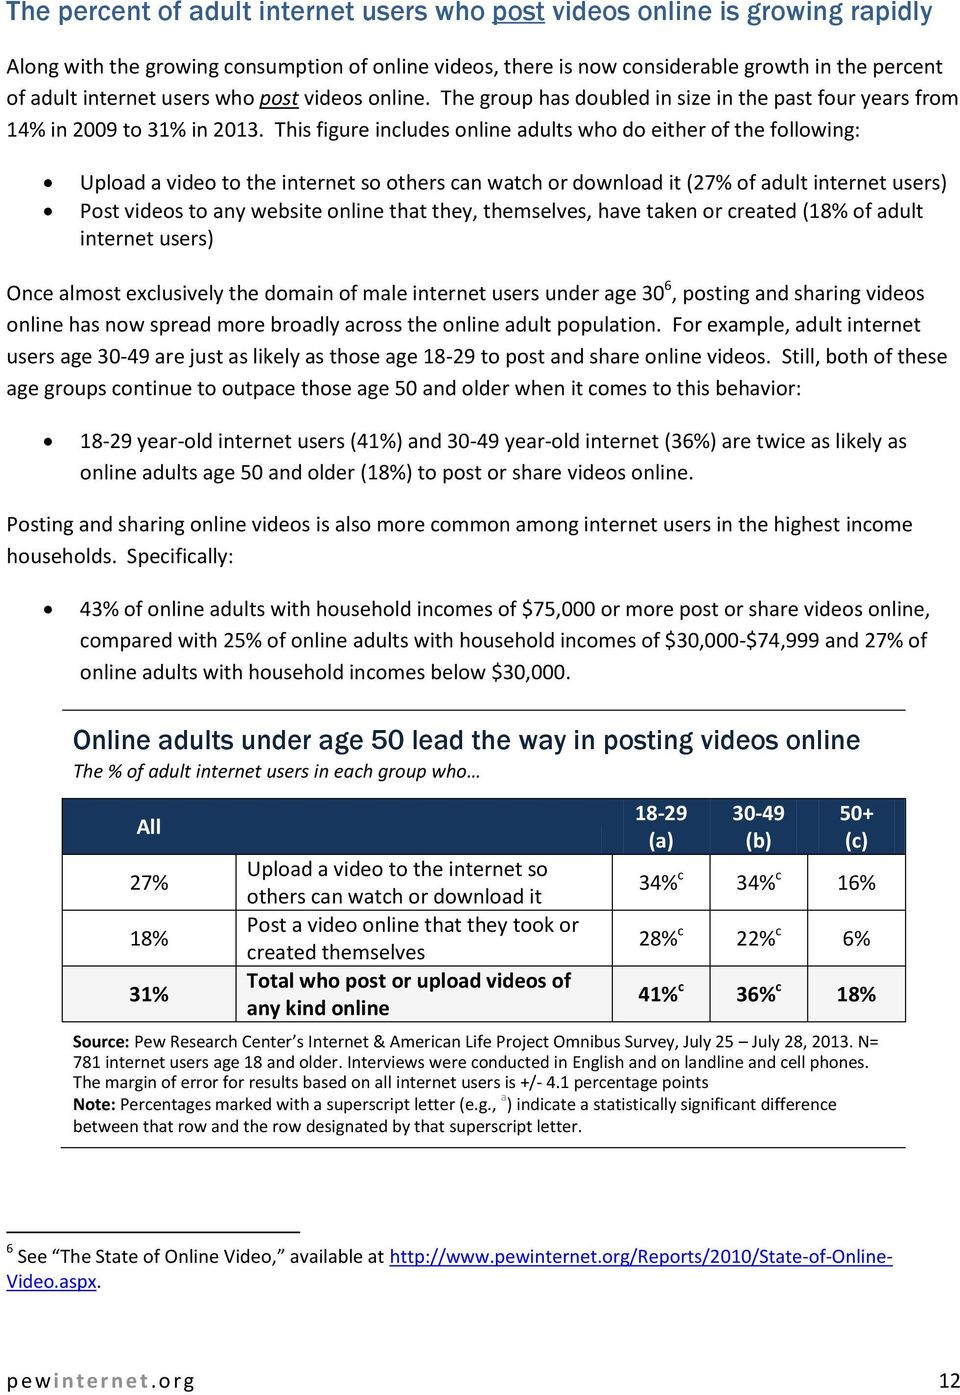 This figure includes online adults who do either of the following: Upload a video to the internet so others can watch or download it (27% of adult internet users) Post videos to any website online